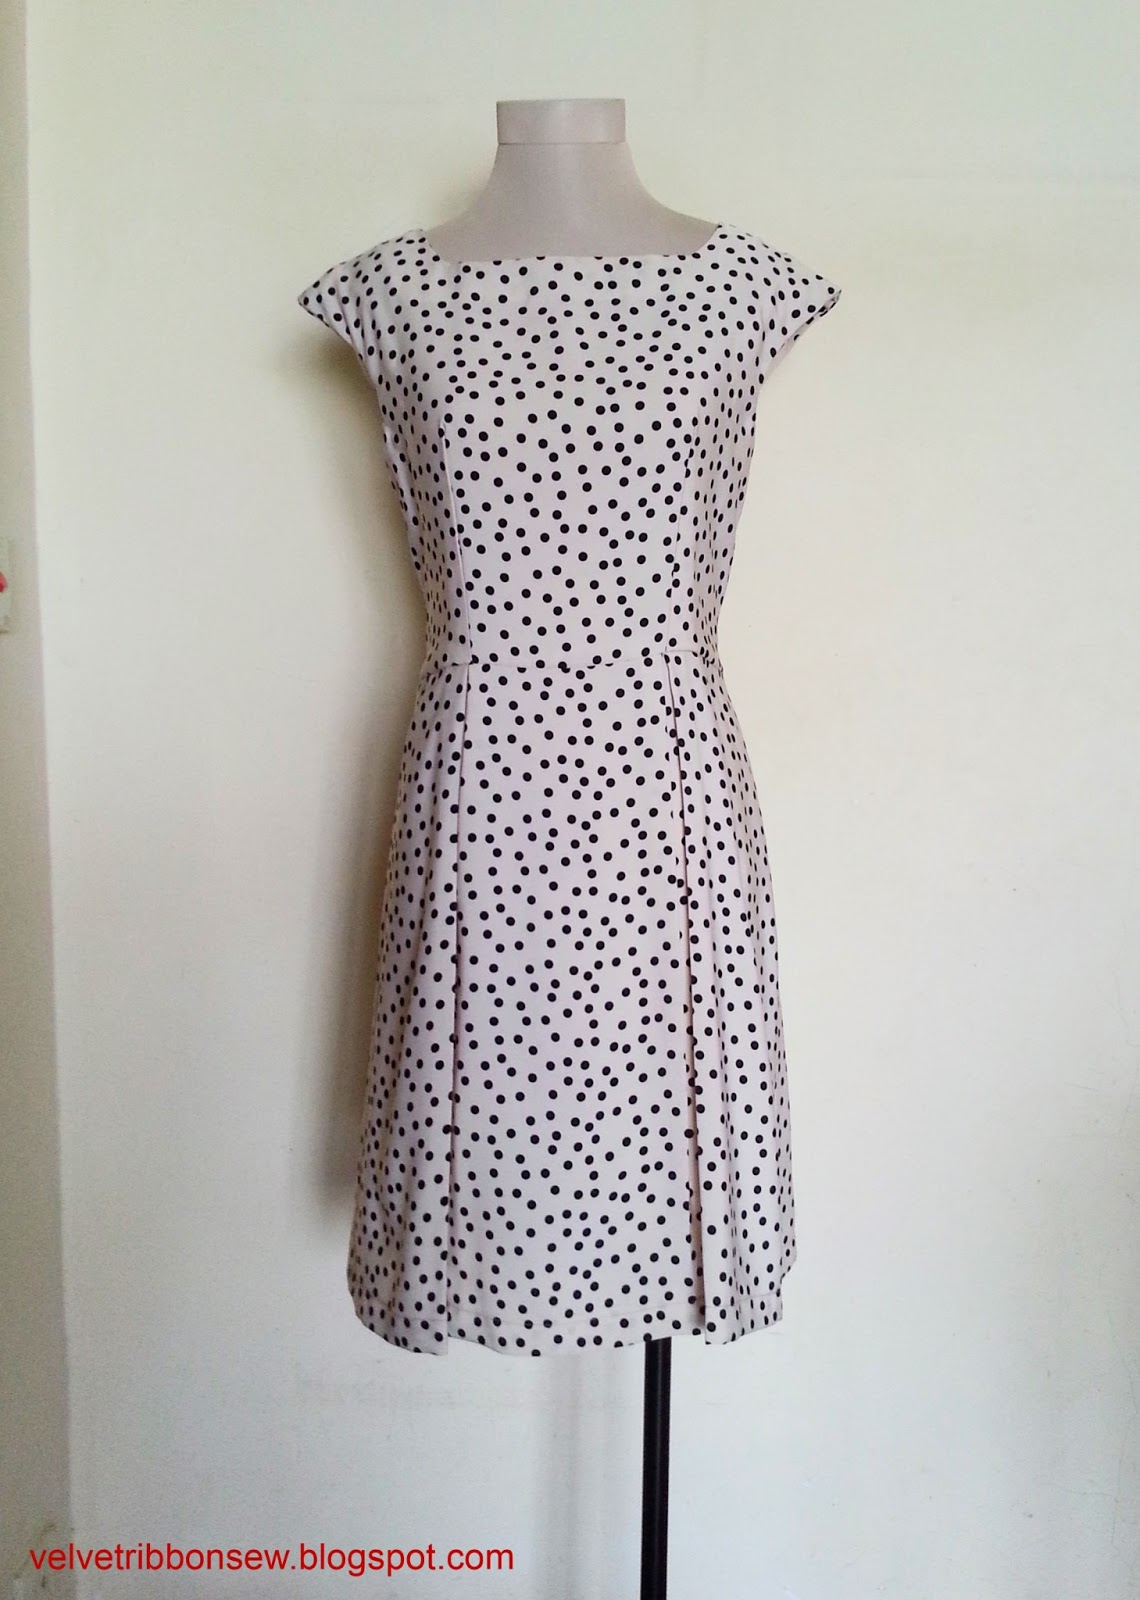 http://velvetribbonsew.blogspot.com/2013/07/sewing-vintage-modern-polka-dot-dress.html